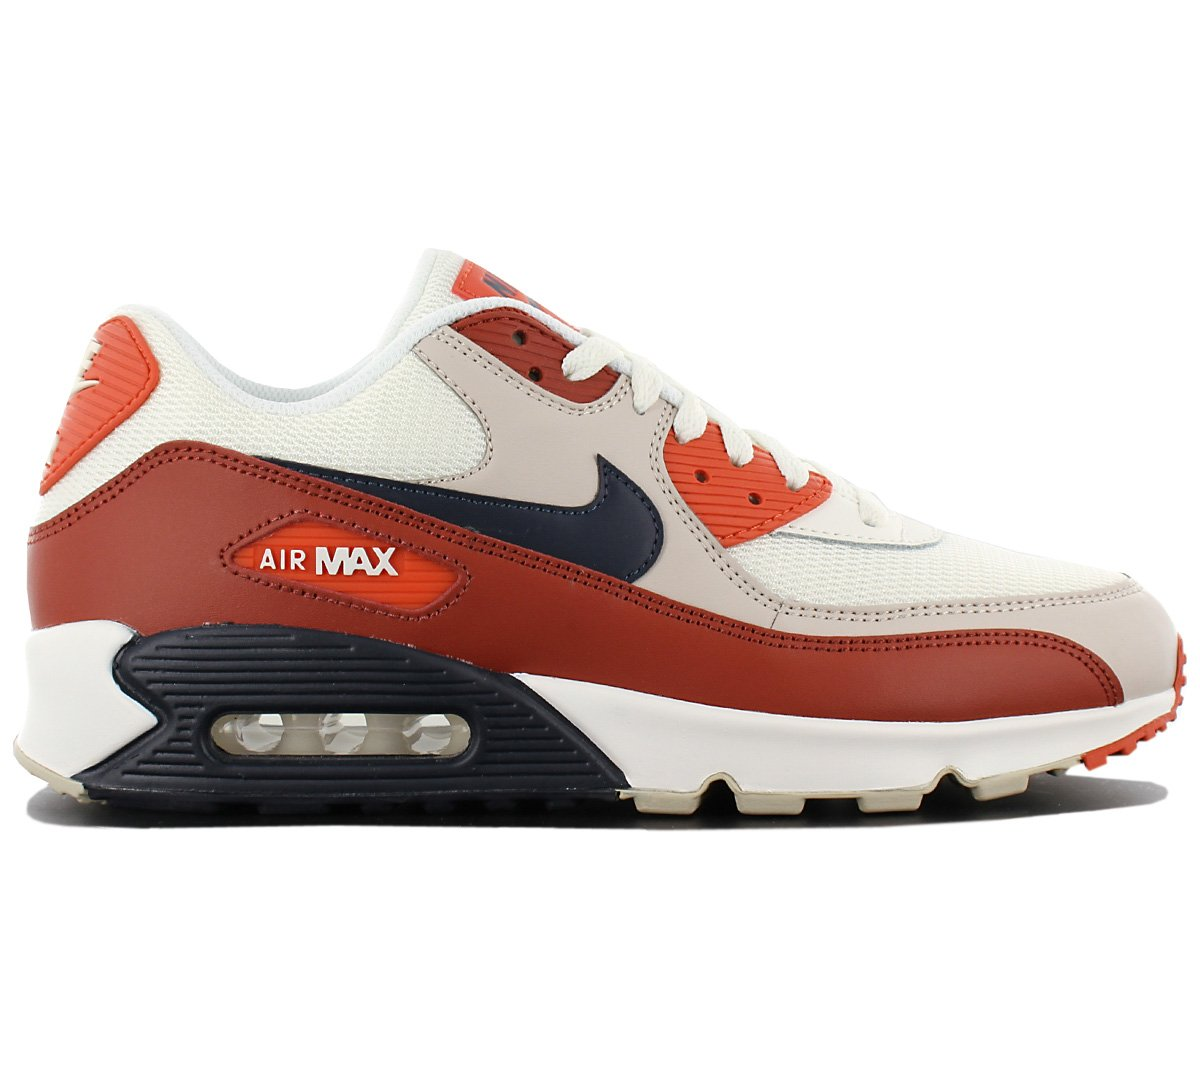 Nike Men's Air Max 90 Essential Running Shoes, Multicolor